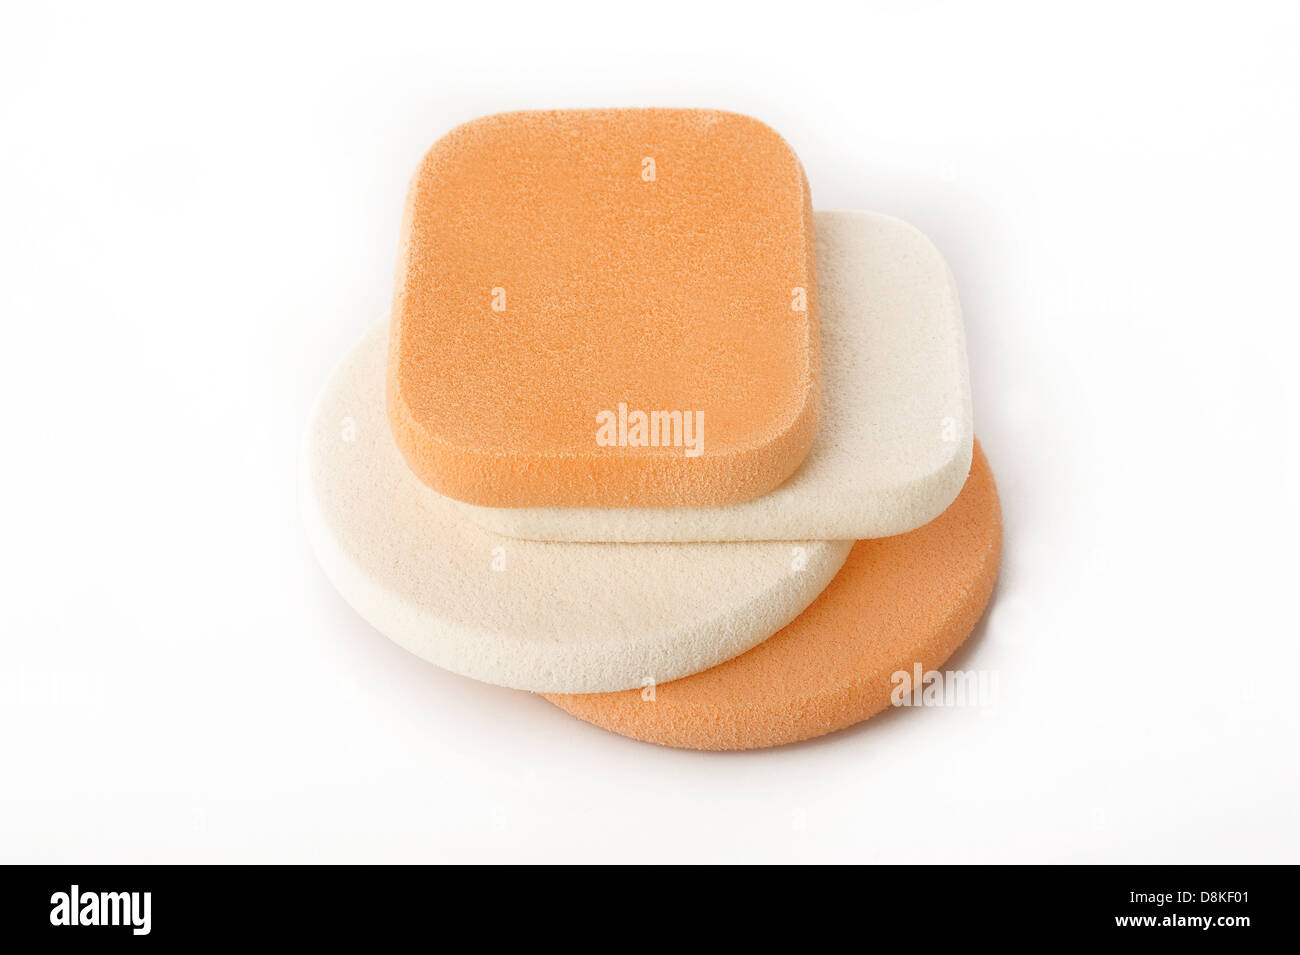 cosmetic sponges on white background - Stock Image